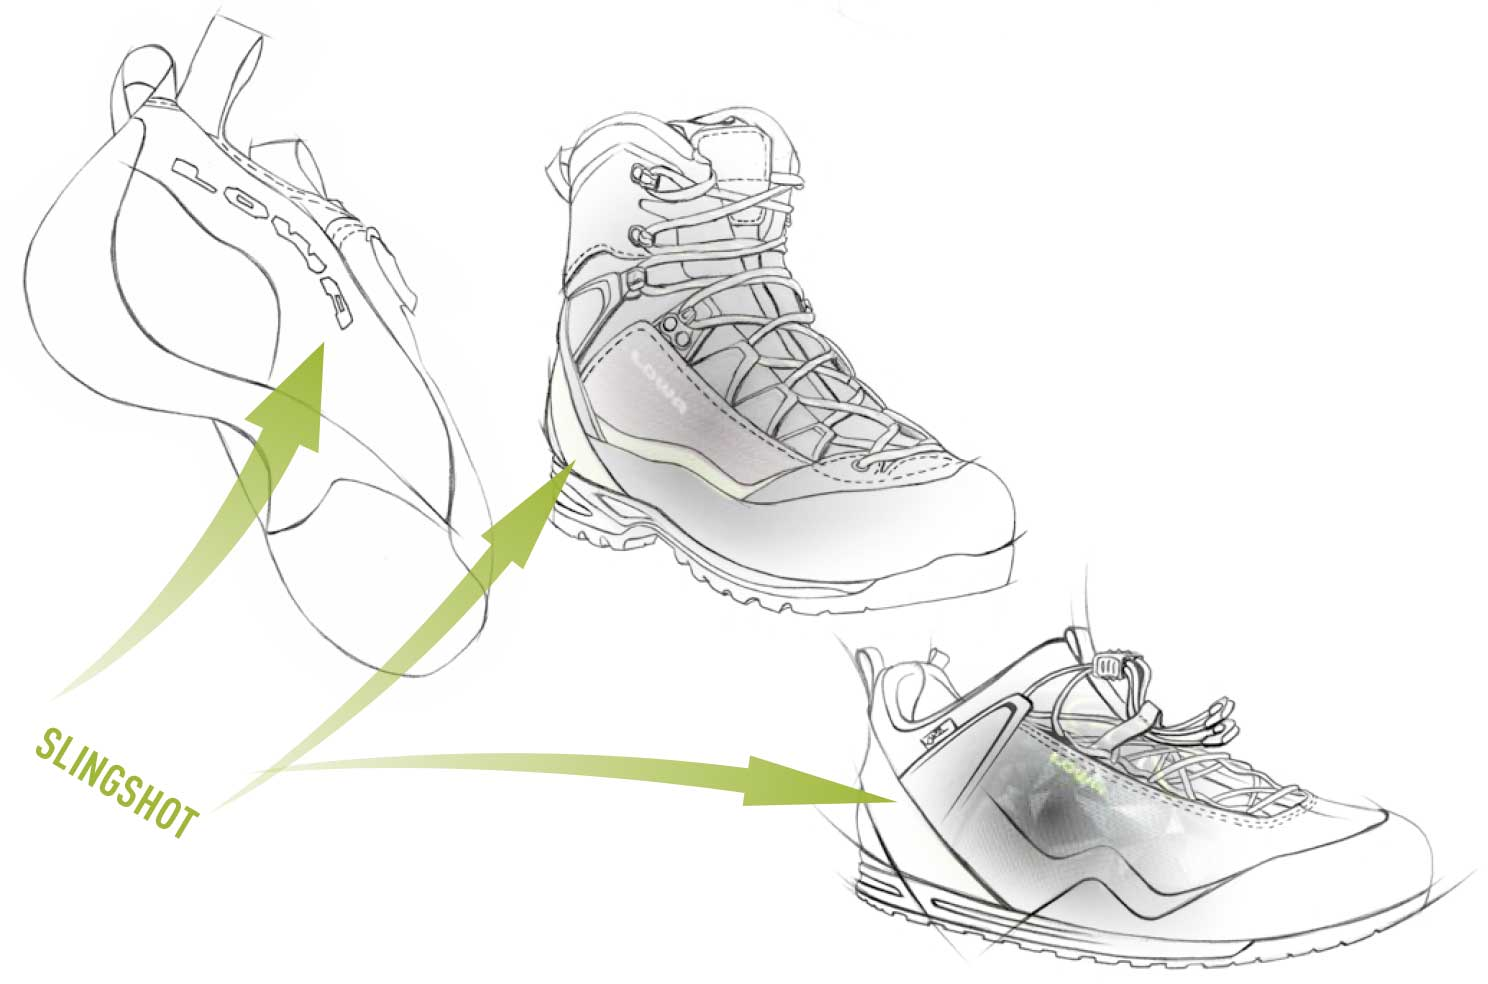 a58a2c1a1768 ... of heel rubber is attached using tension. This SLINGSHOT effect  generates a powerful restoring force